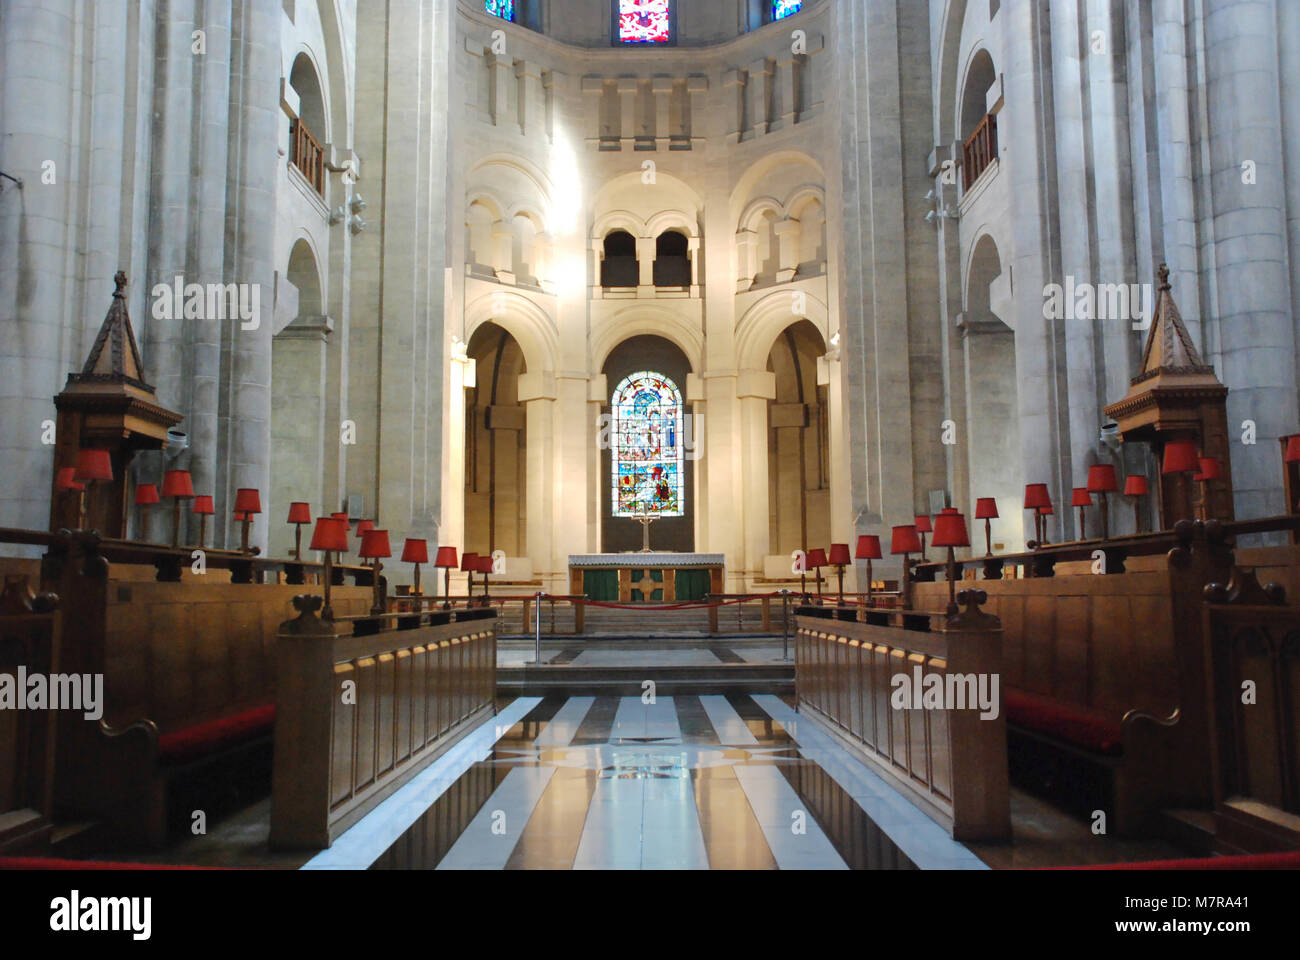 Interior of St. Anne's Cathedral, Belfast, Northern İreland, UK - Stock Image